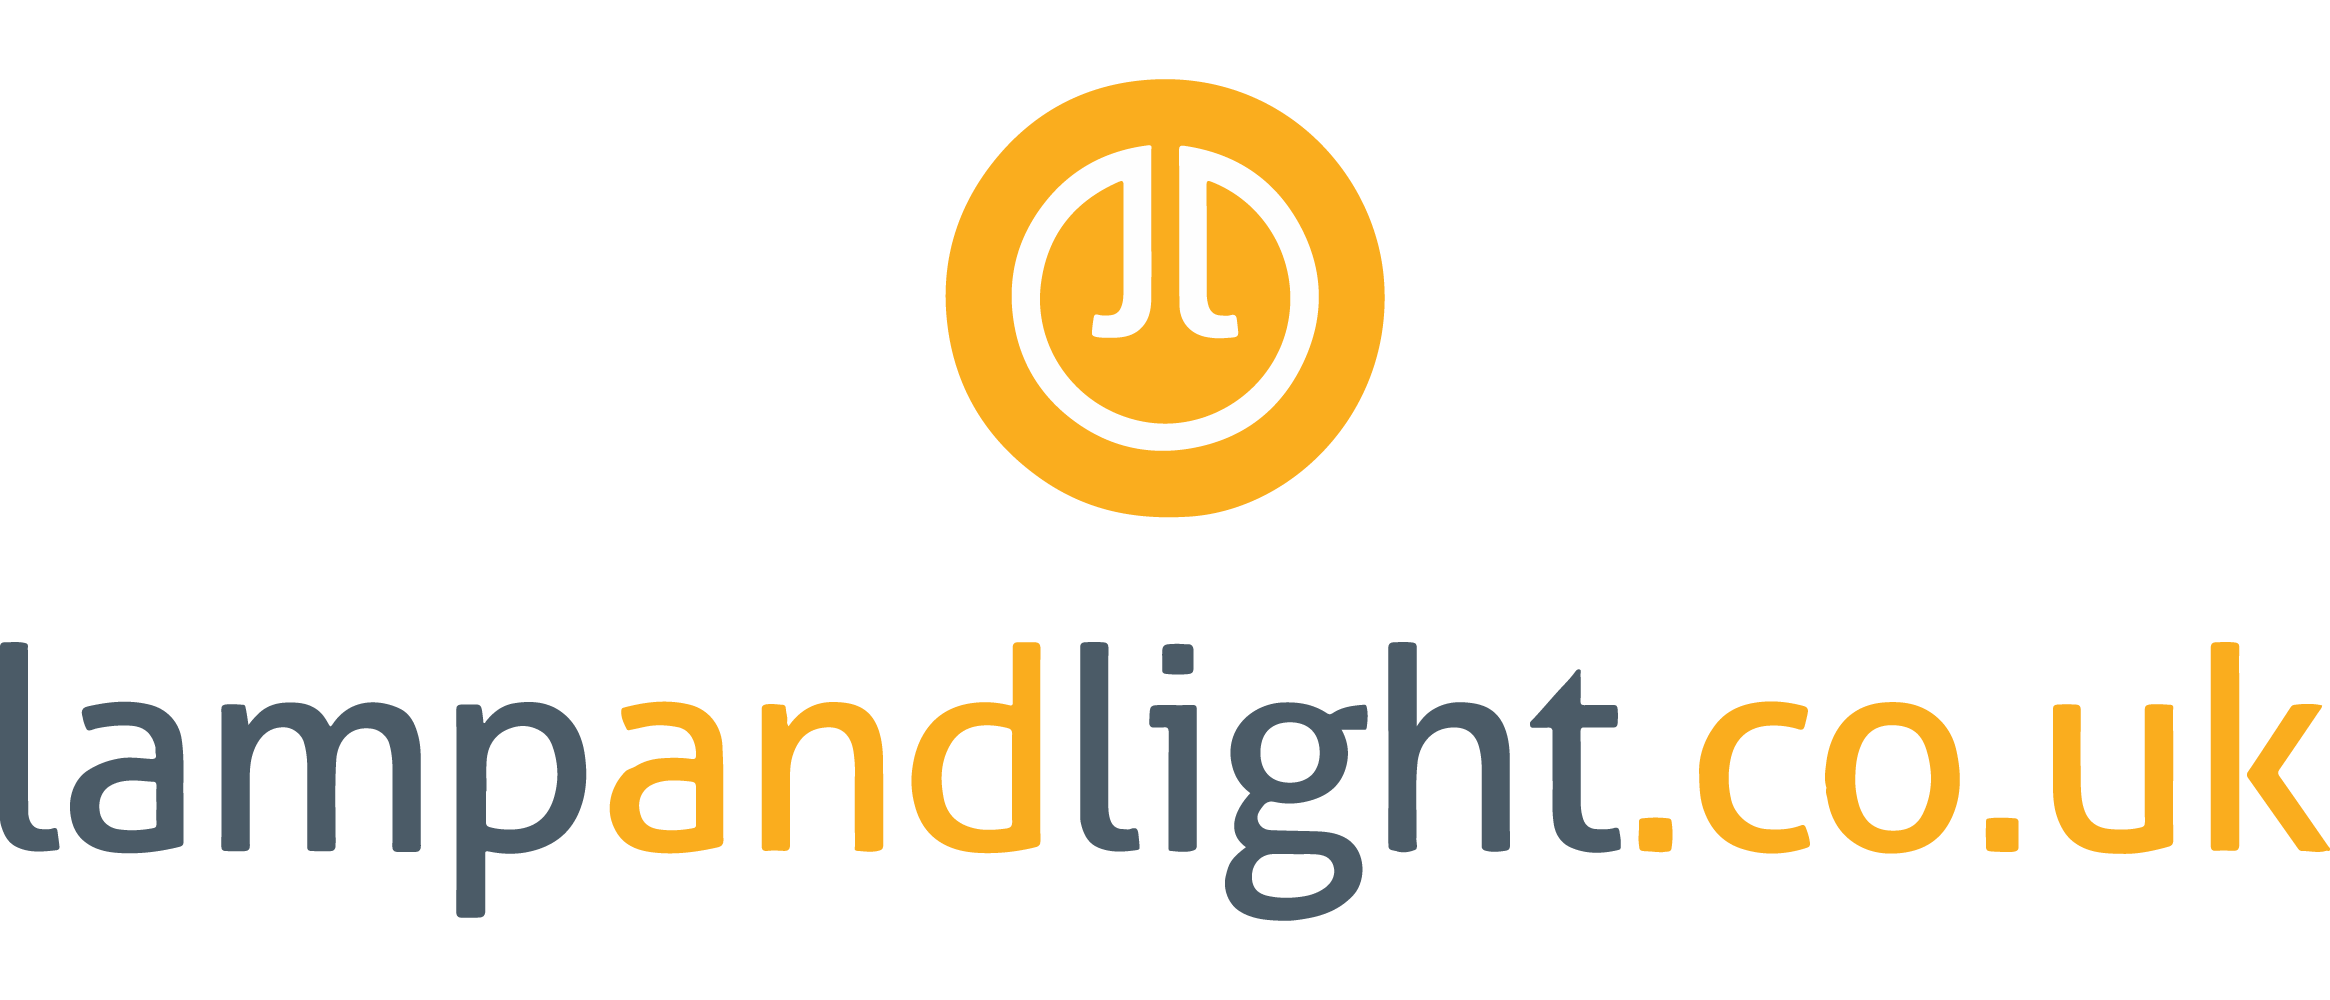 Lampandlight.co.uk